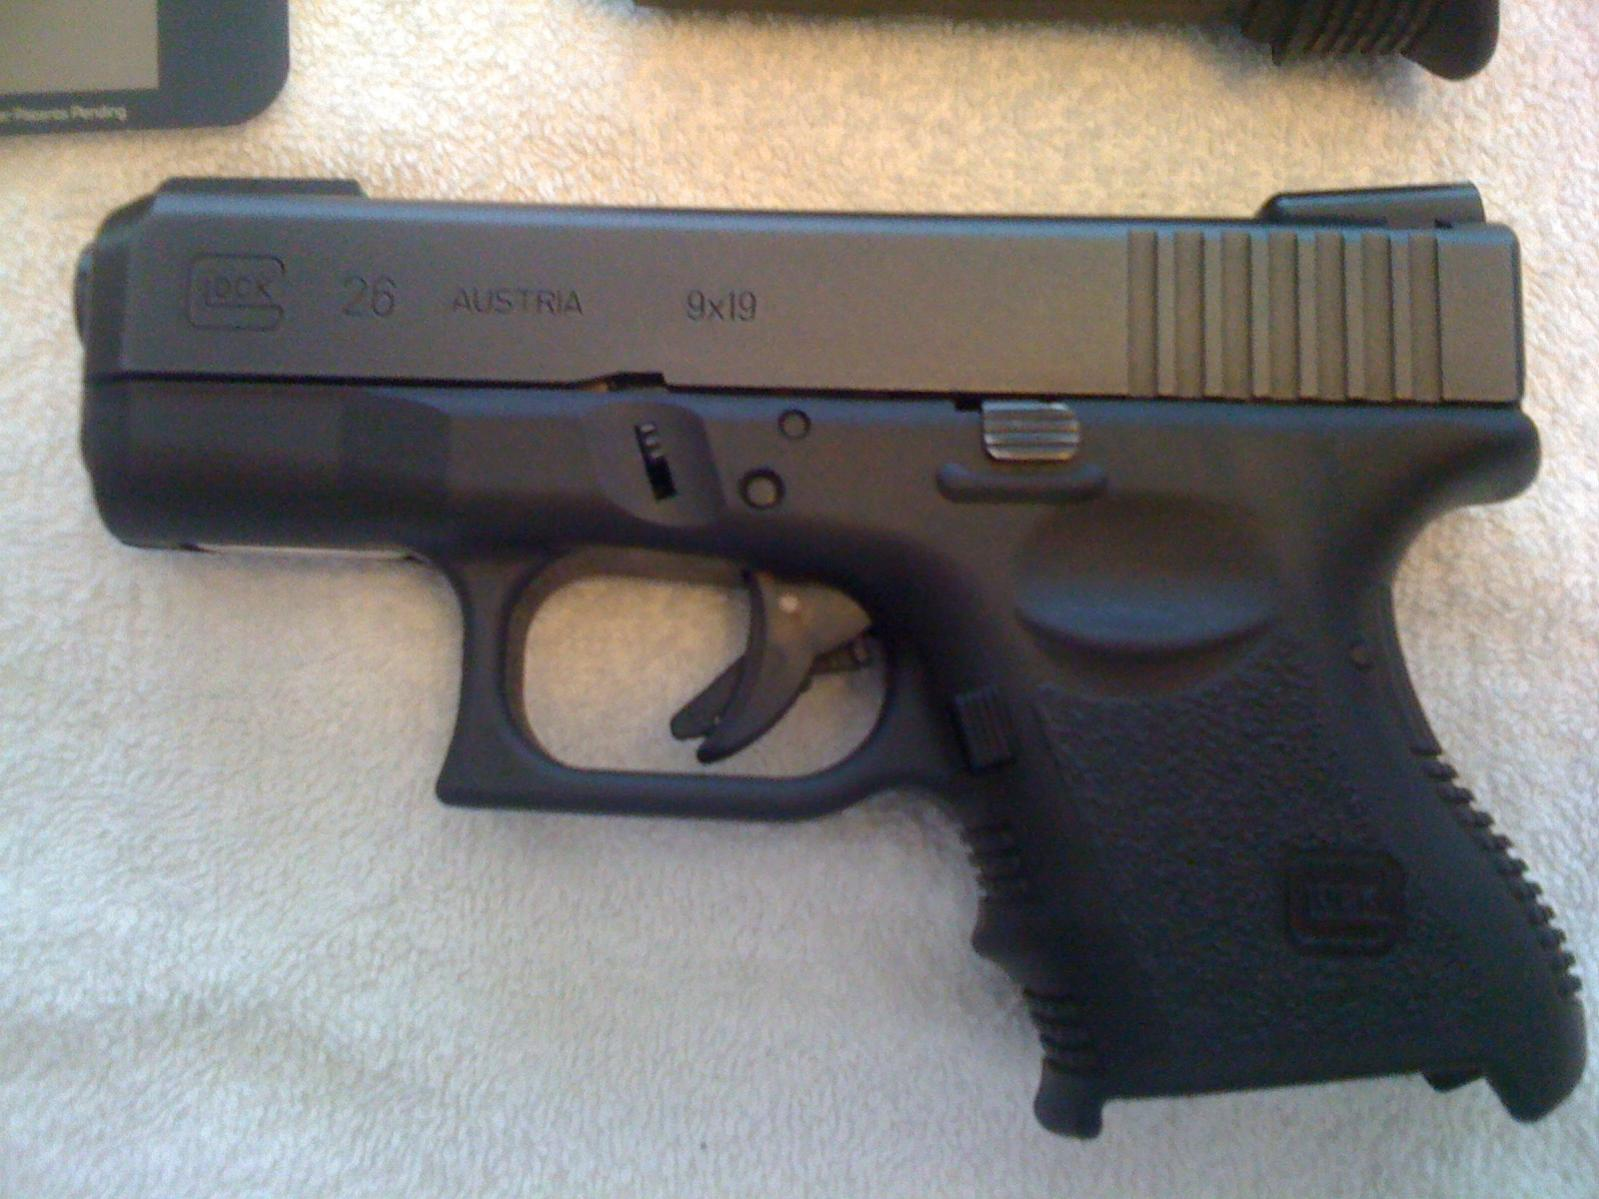 Another glock!!!-photo.jpg